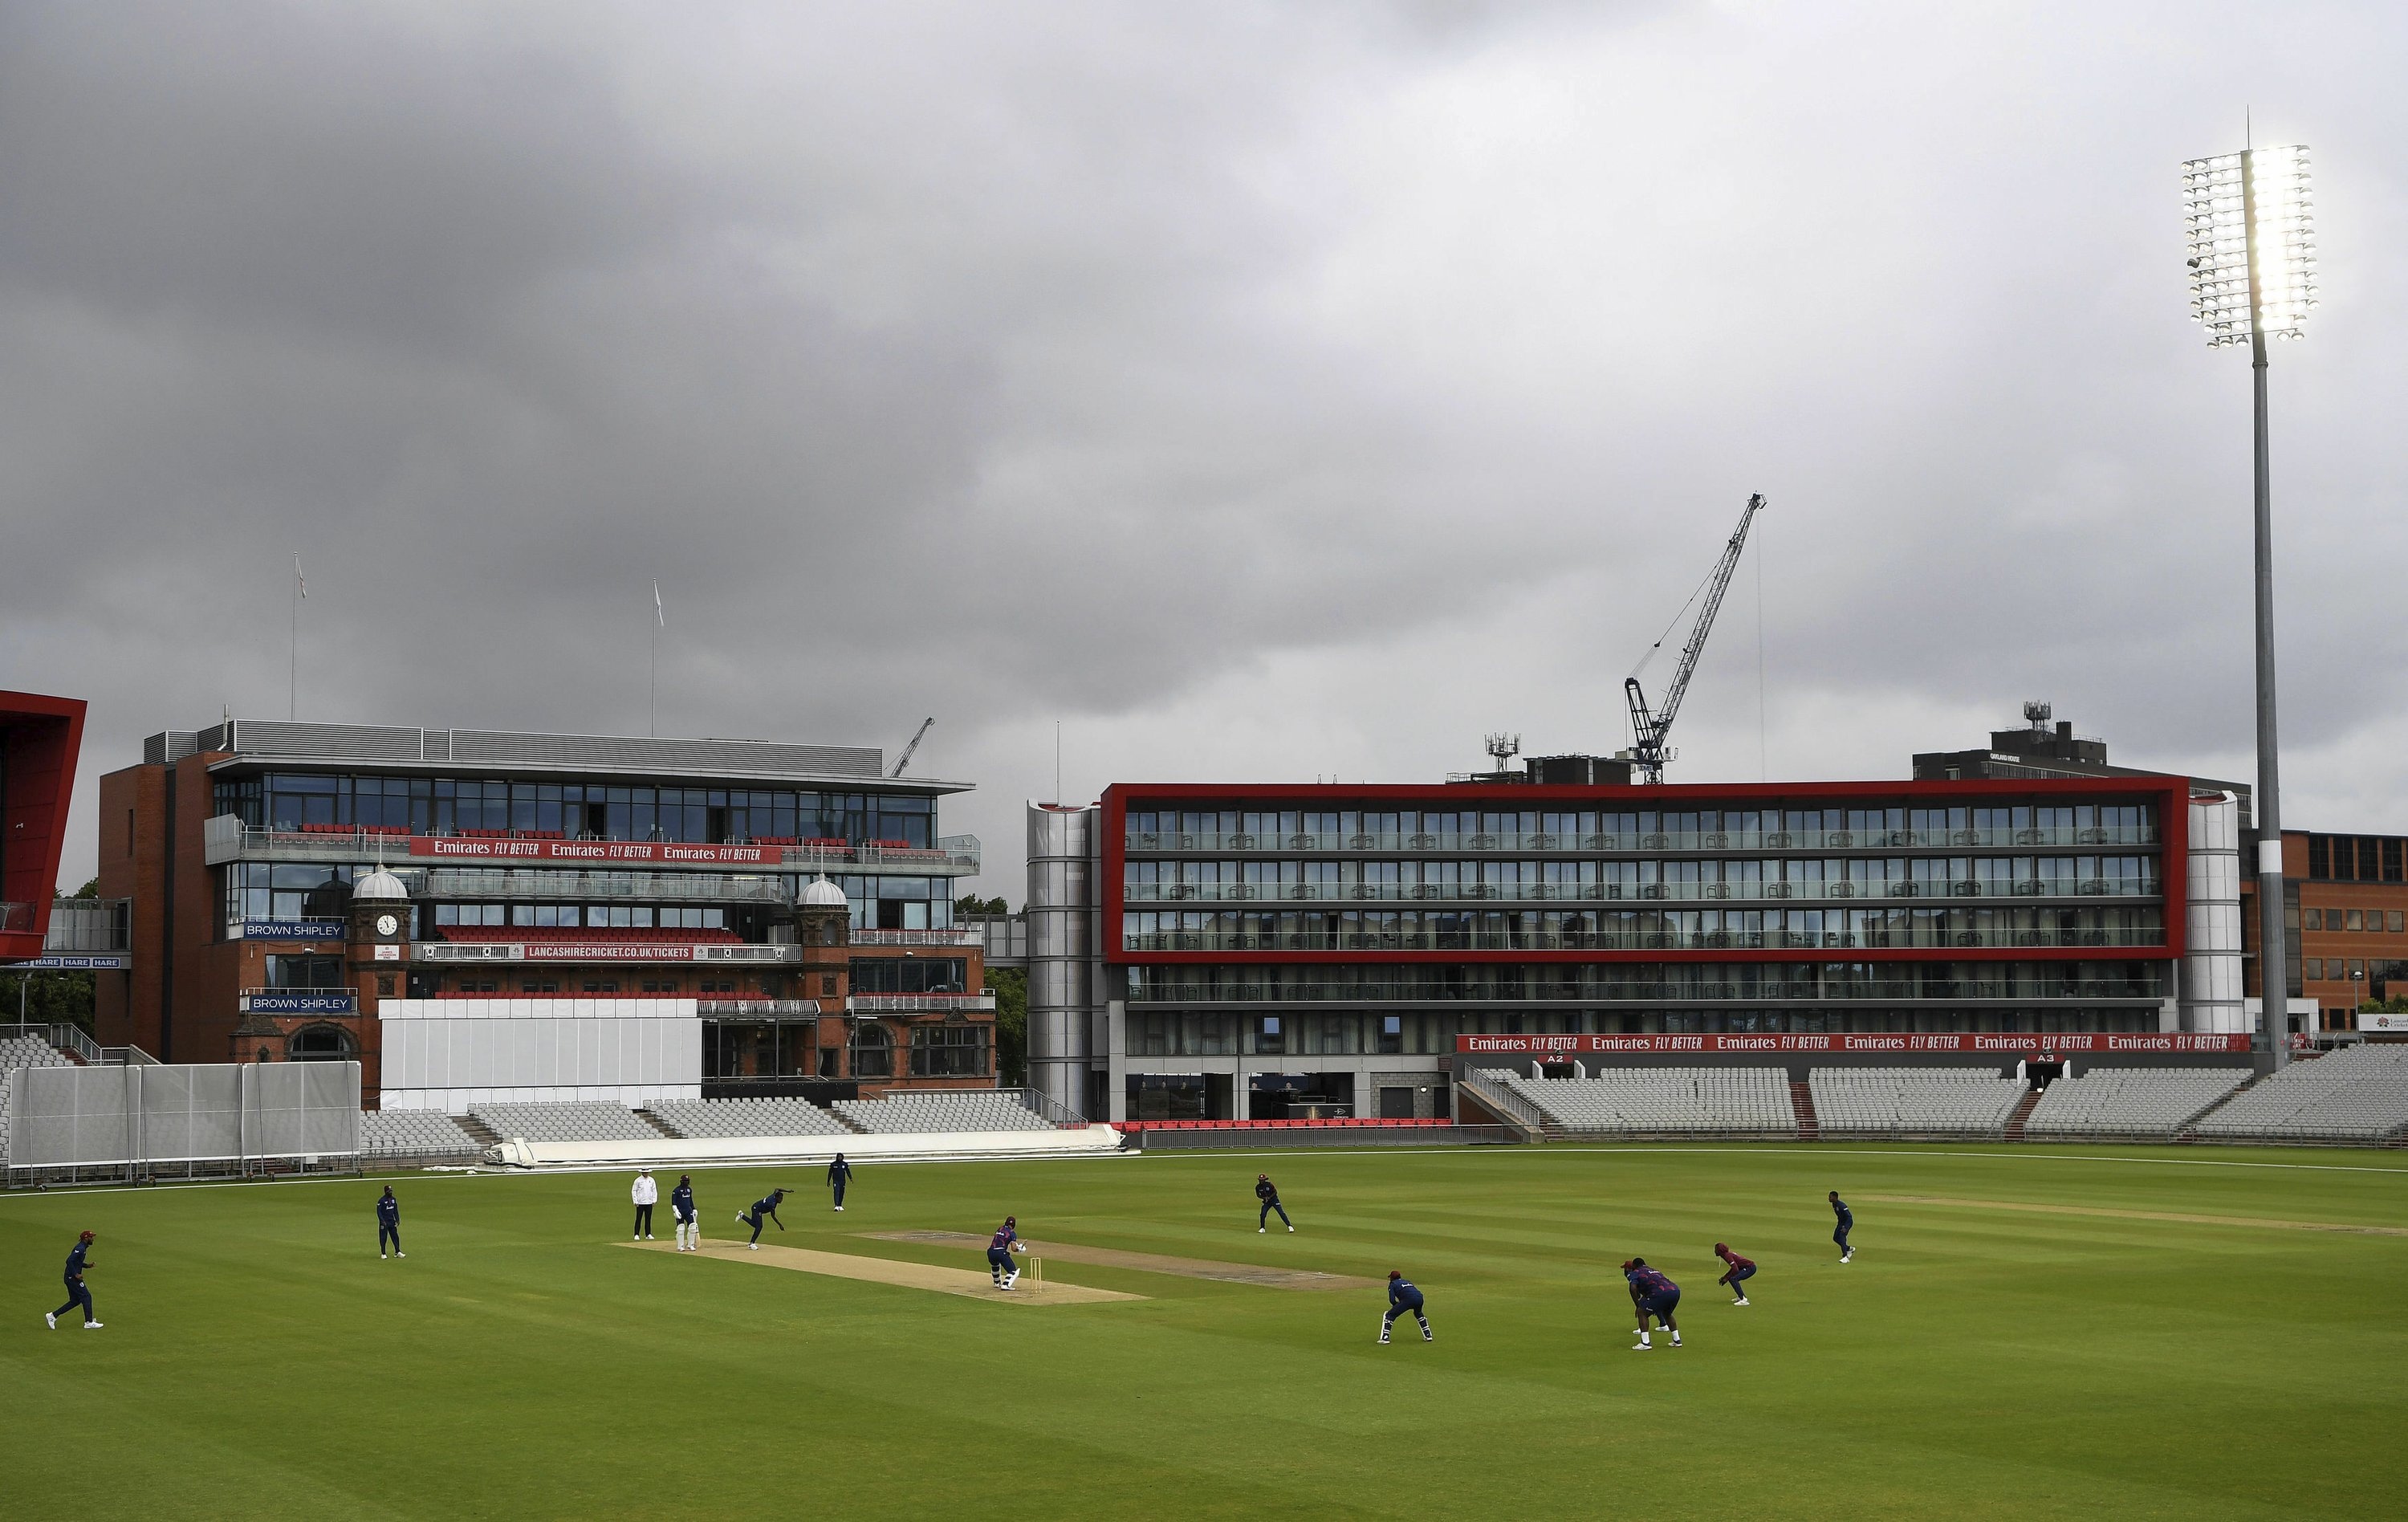 English cricket makes plans to increase diversity